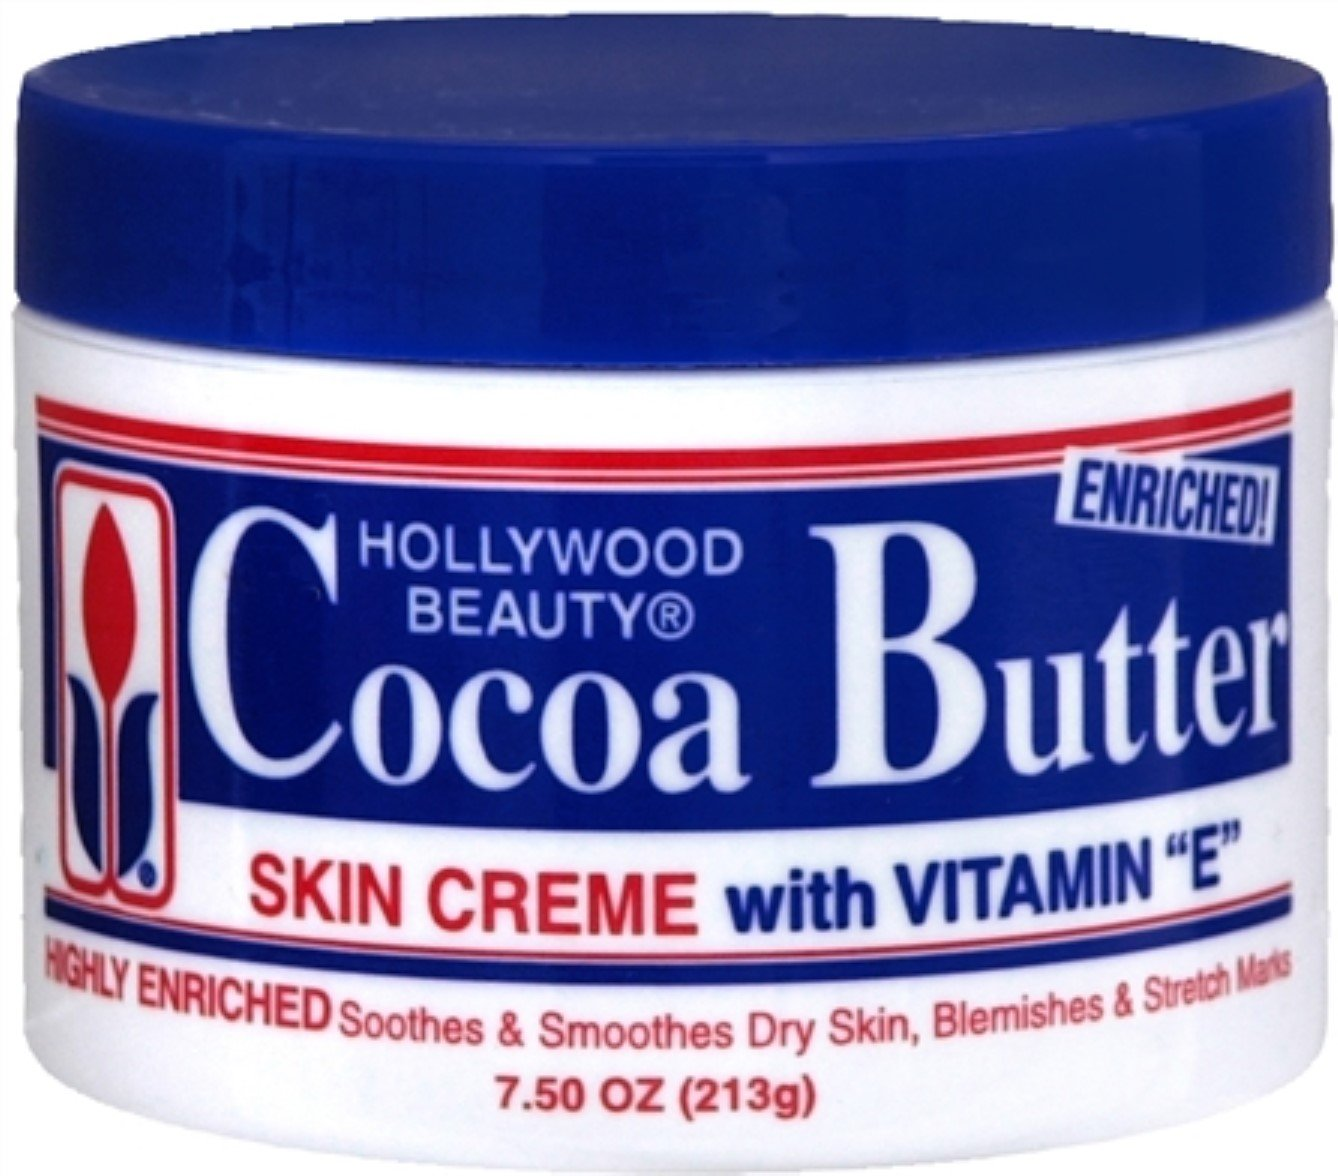 Hollywood Beauty Cocoa Butter Skin Creme 7.50 oz (Pack of 5)